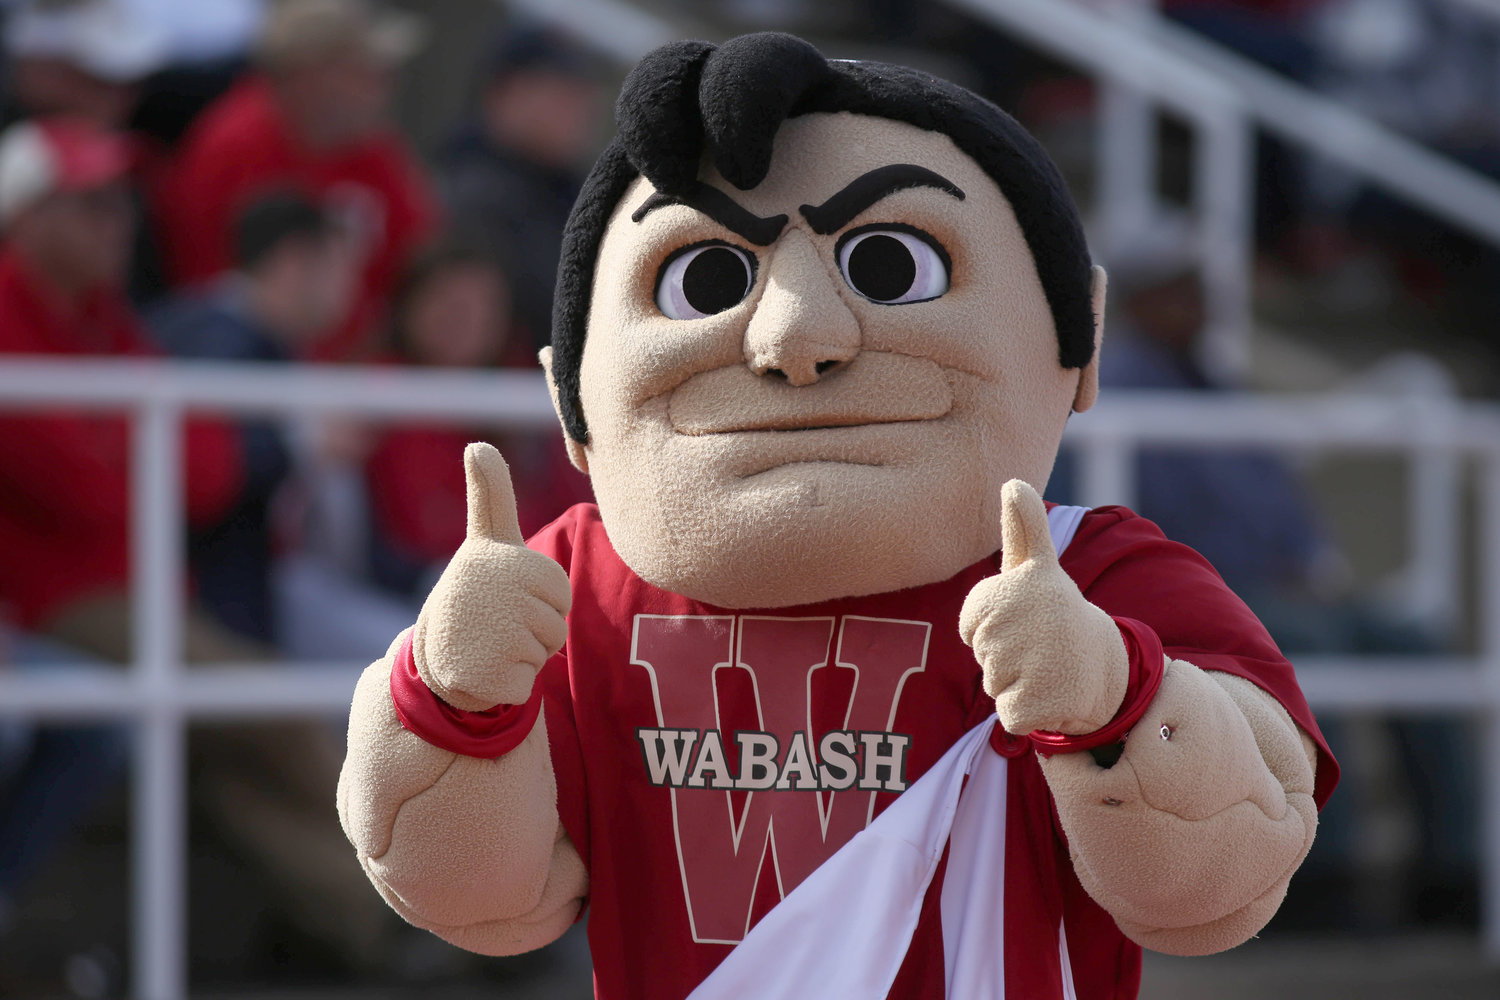 "U.S. News also honored Wabash as an A+ School for B Students, an institution ""where spirit and hard work could make all the difference to admissions,"" according to the publication's criteria."